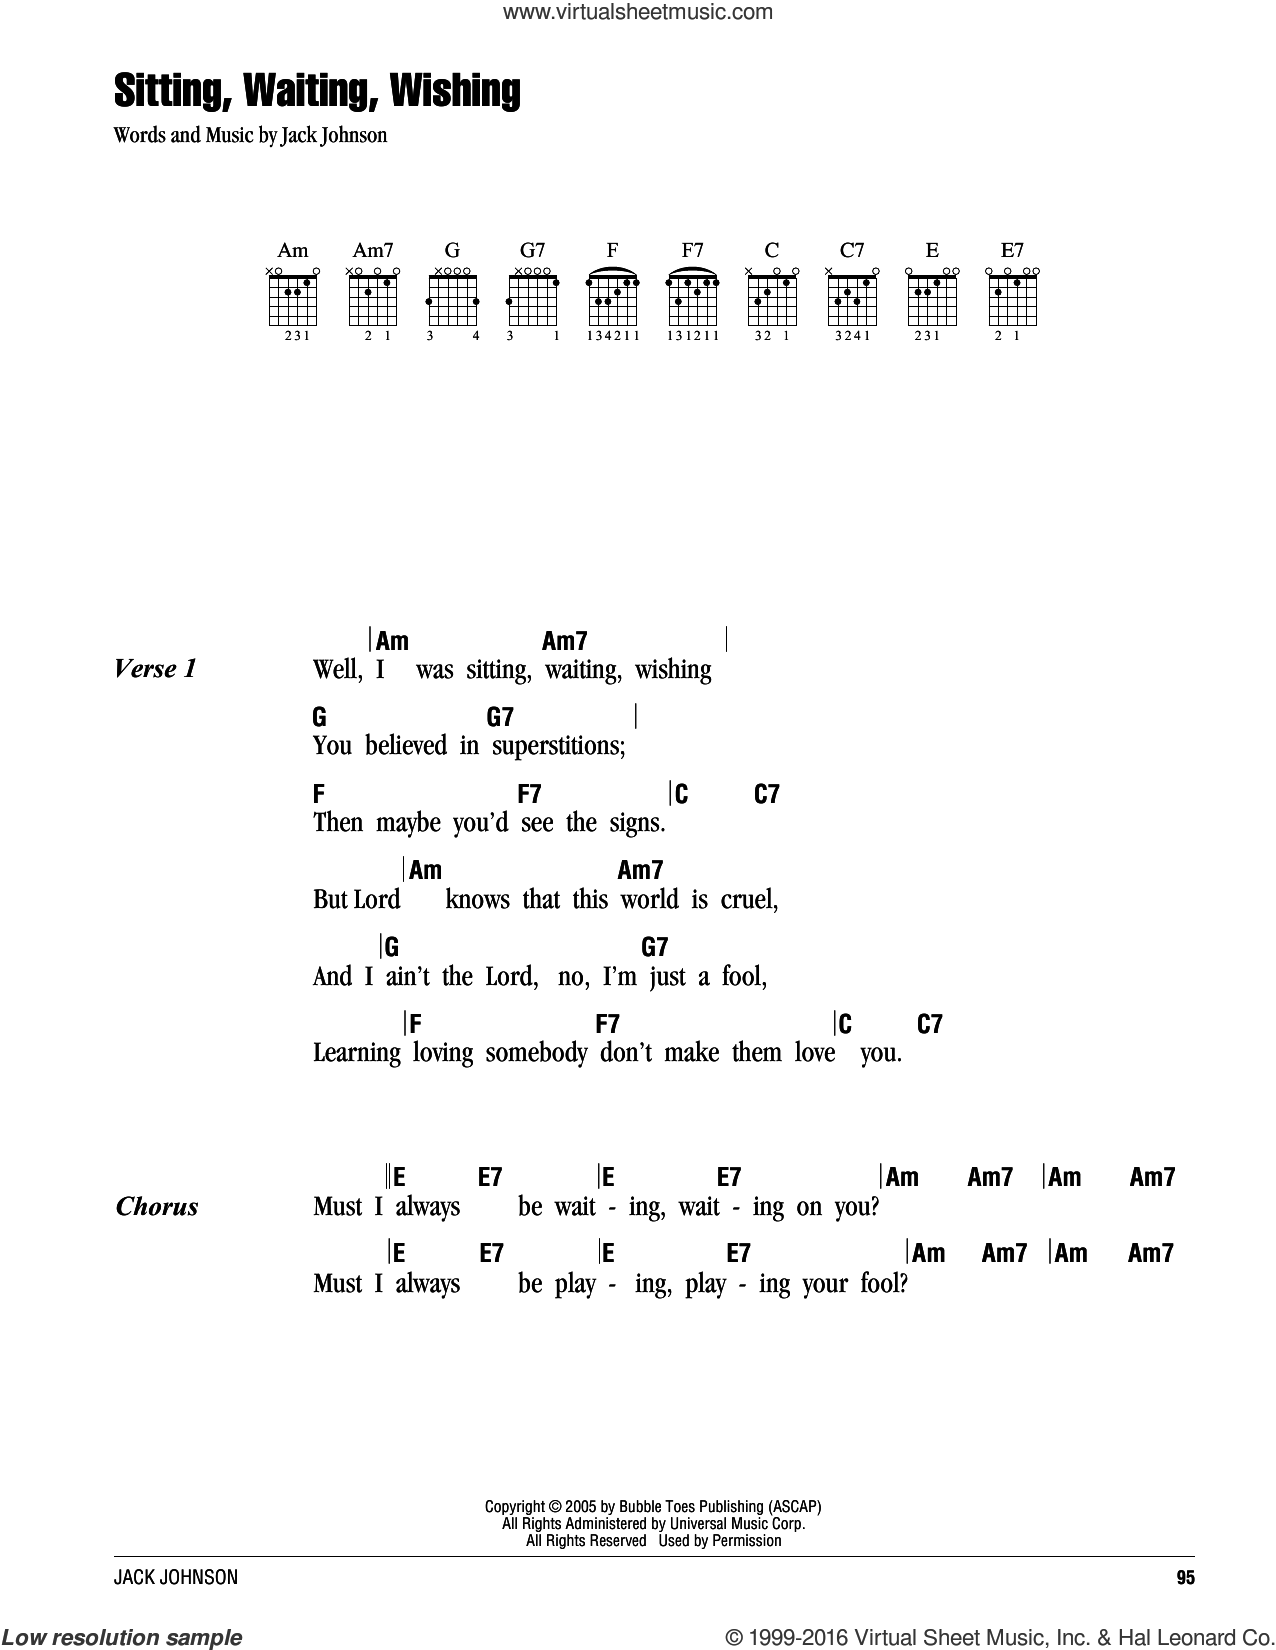 Sitting, Waiting, Wishing sheet music for guitar (chords) by Jack Johnson. Score Image Preview.